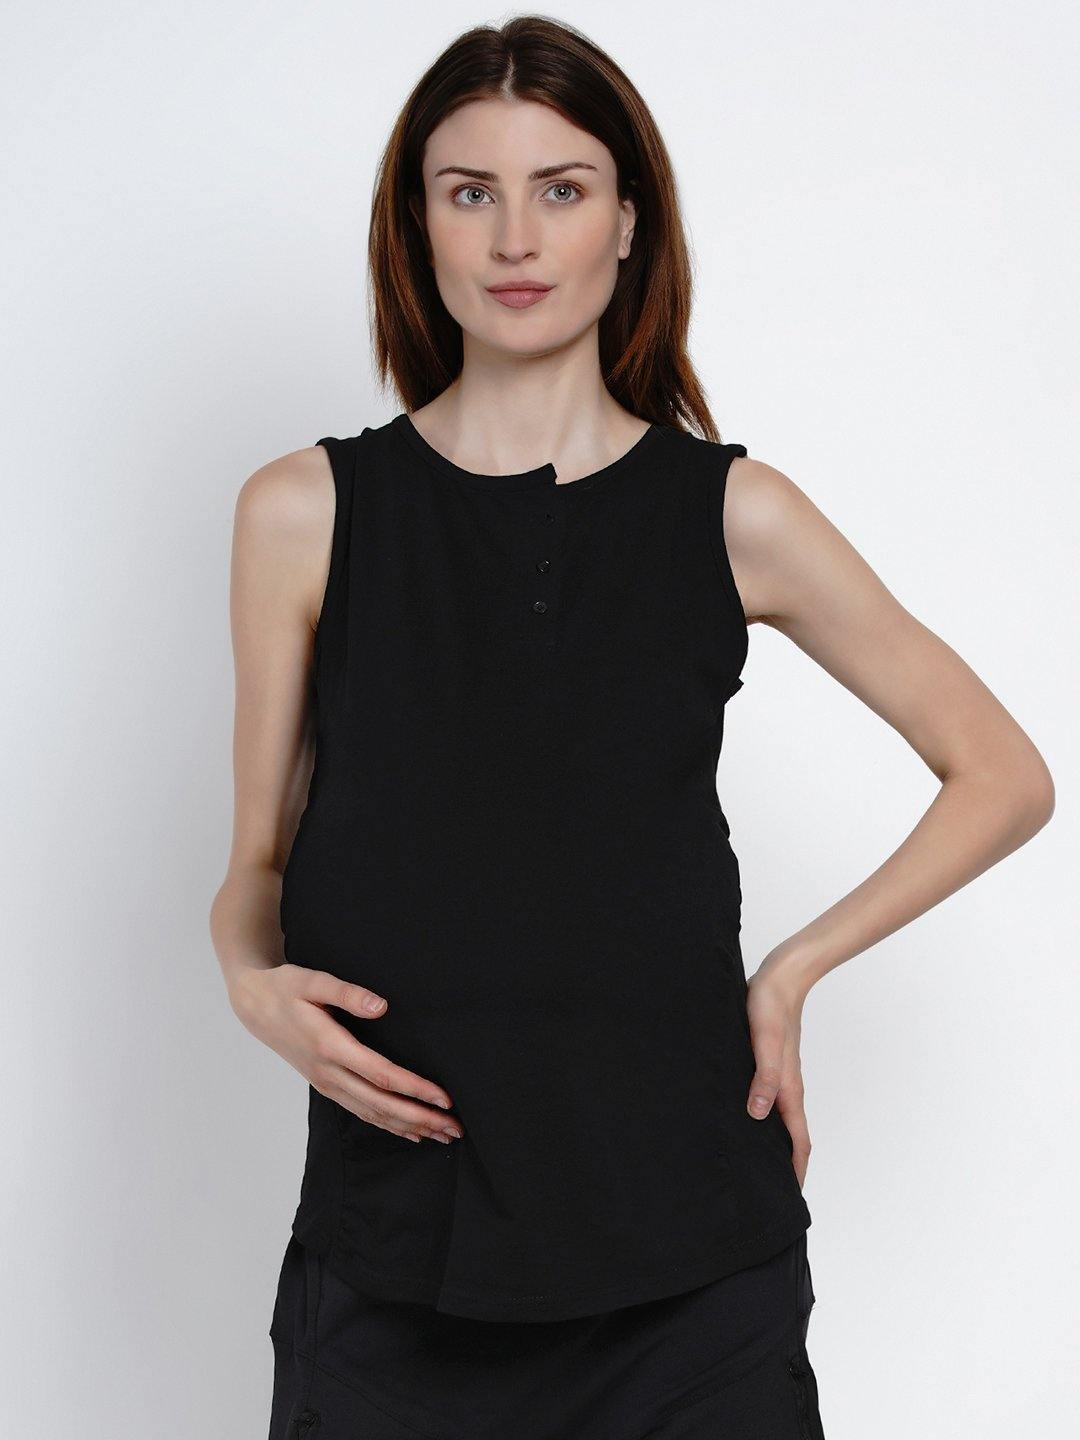 Mine4Nine - T-Shirt - Mine4Nine Women's Black Cotton Maternity Yoga T-shirts